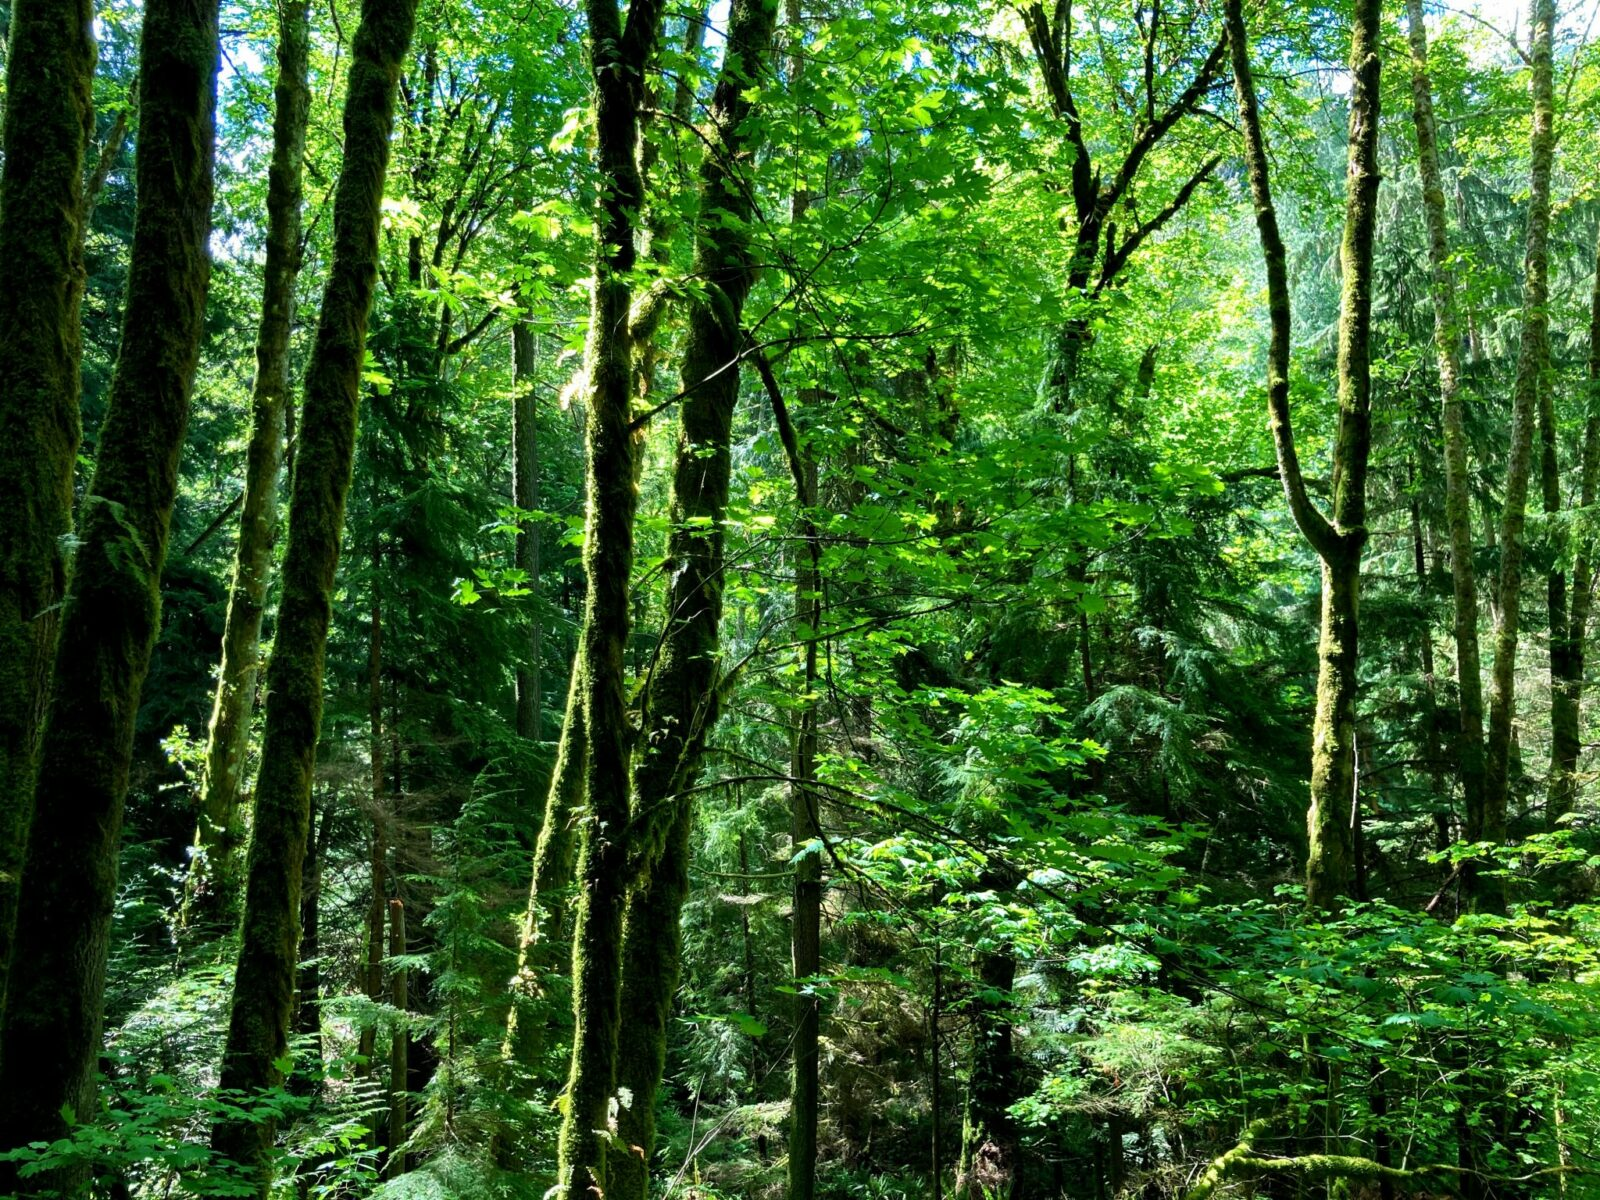 Dense green forest and ferns below on a sunny day